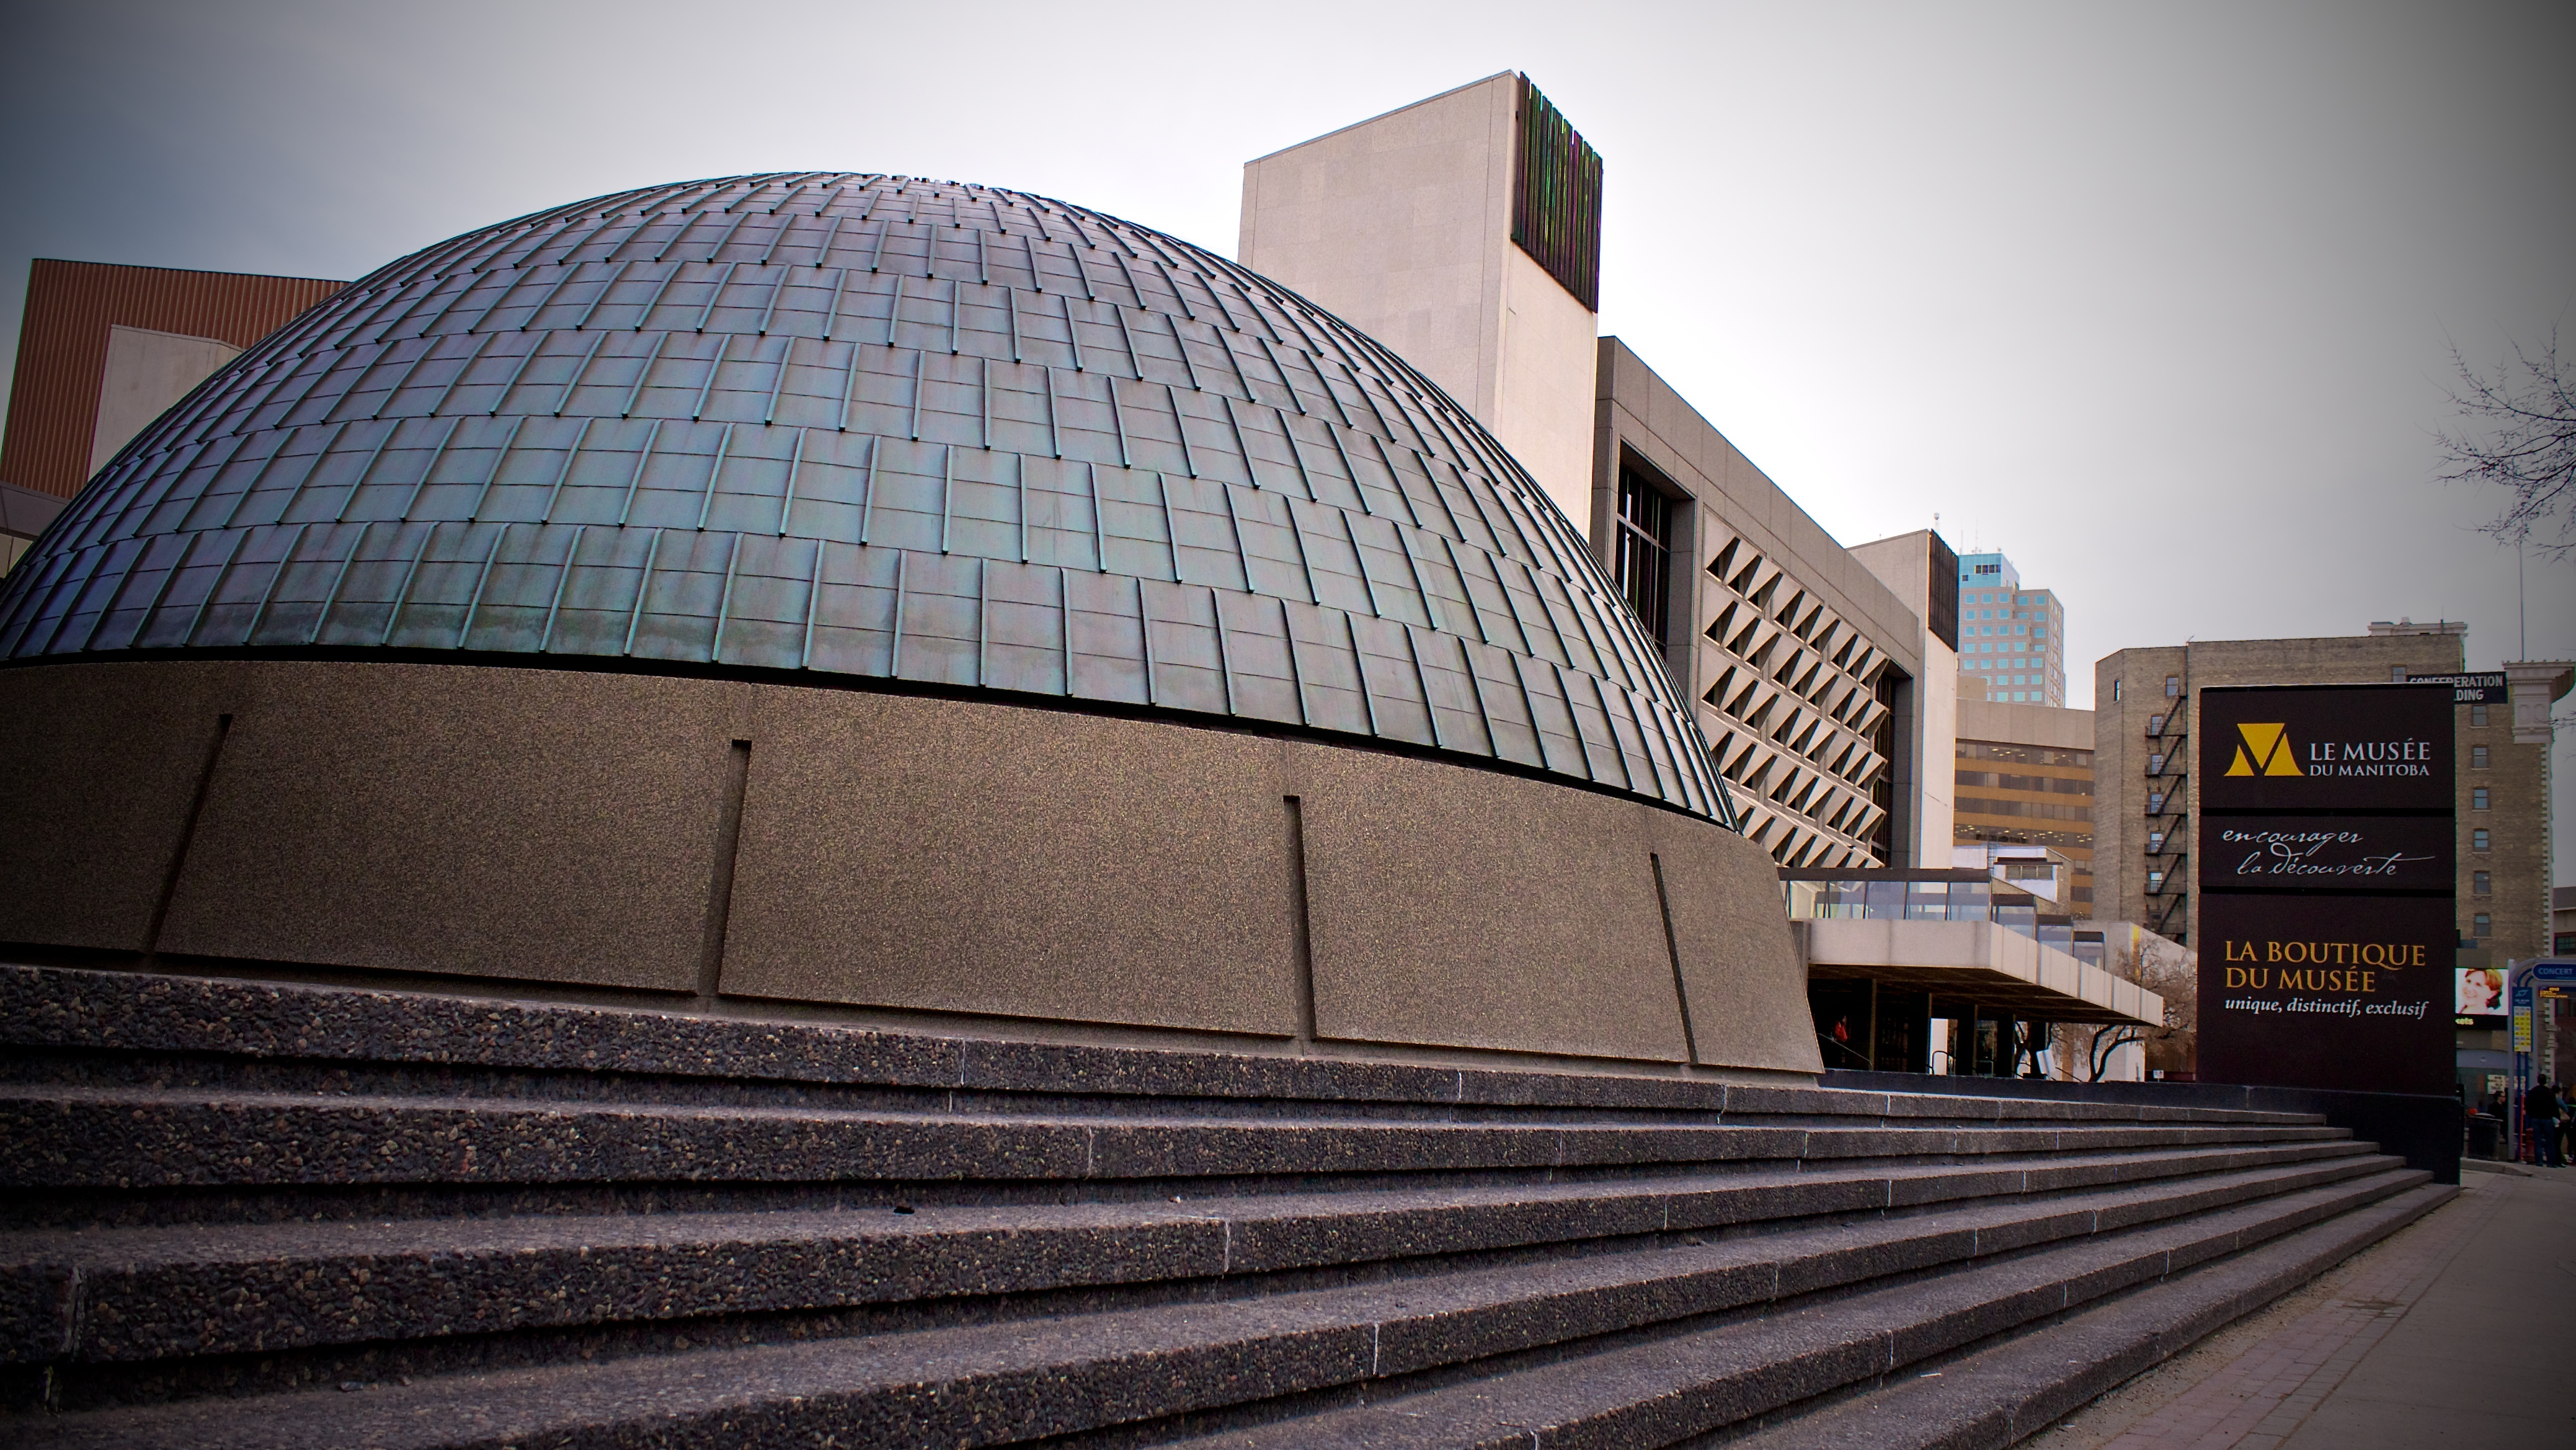 Manitoba Museum- one of the attractions in Winnipeg